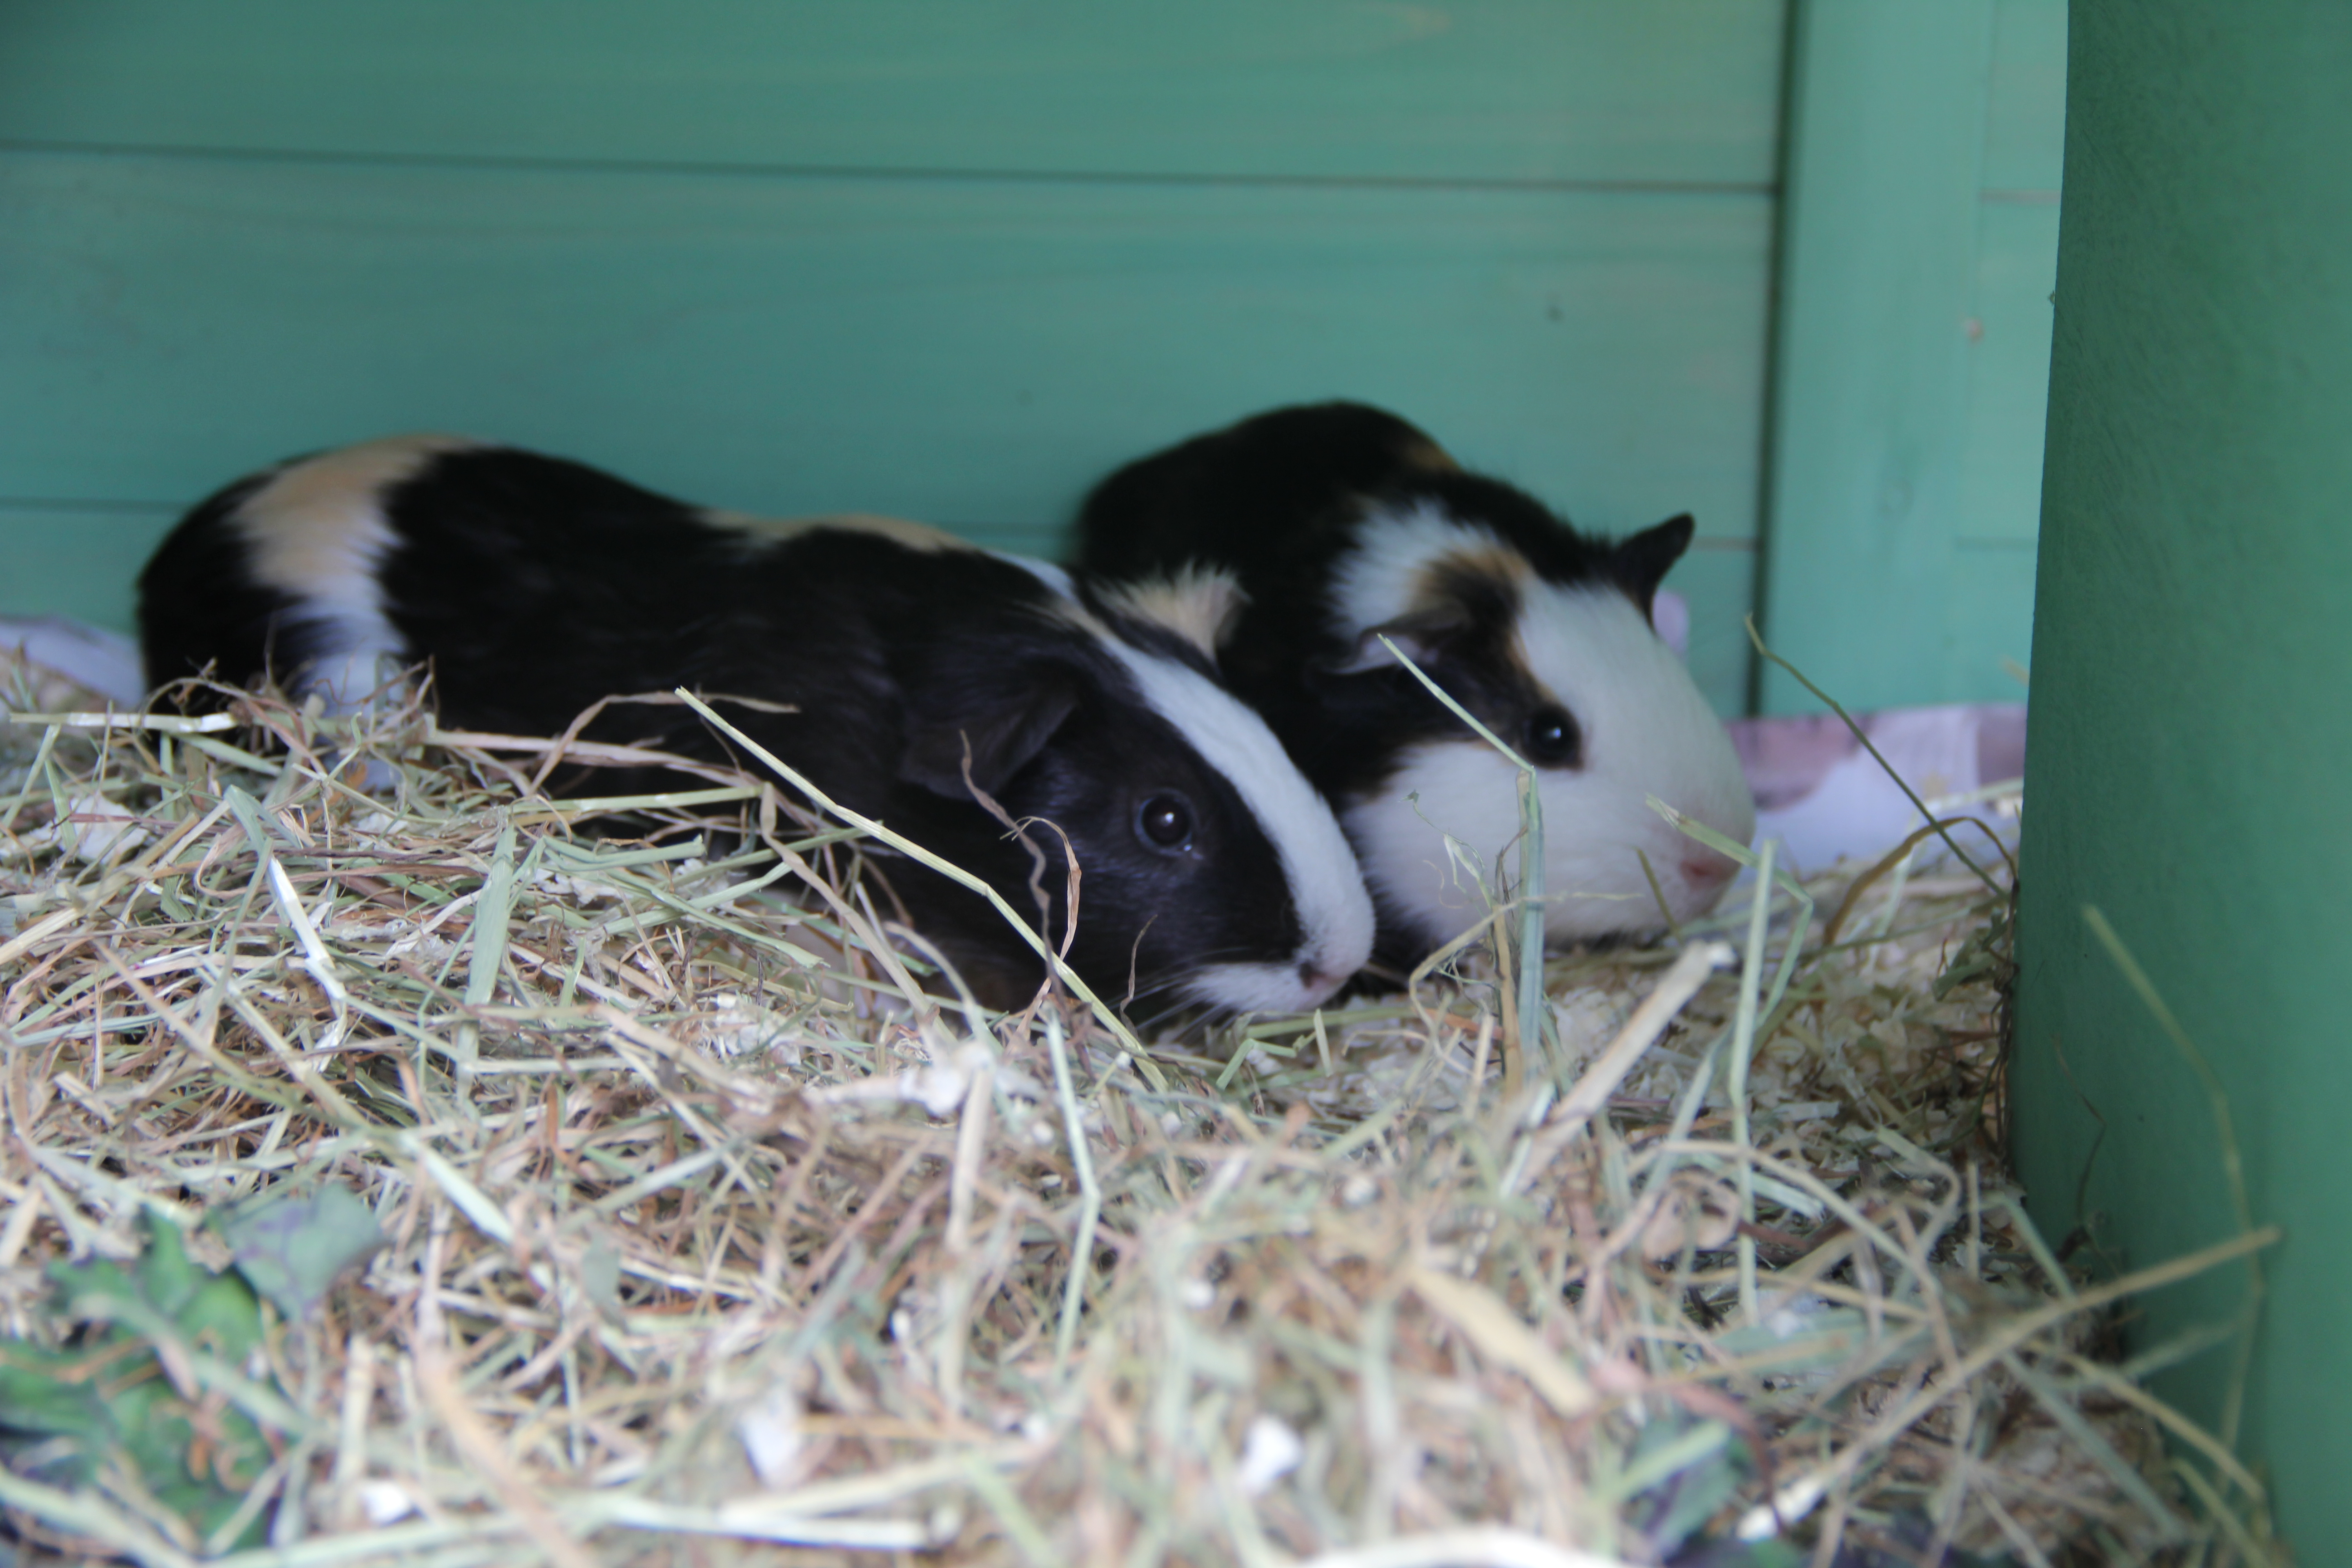 Guinea pigs take up residence to provide therapy for service users